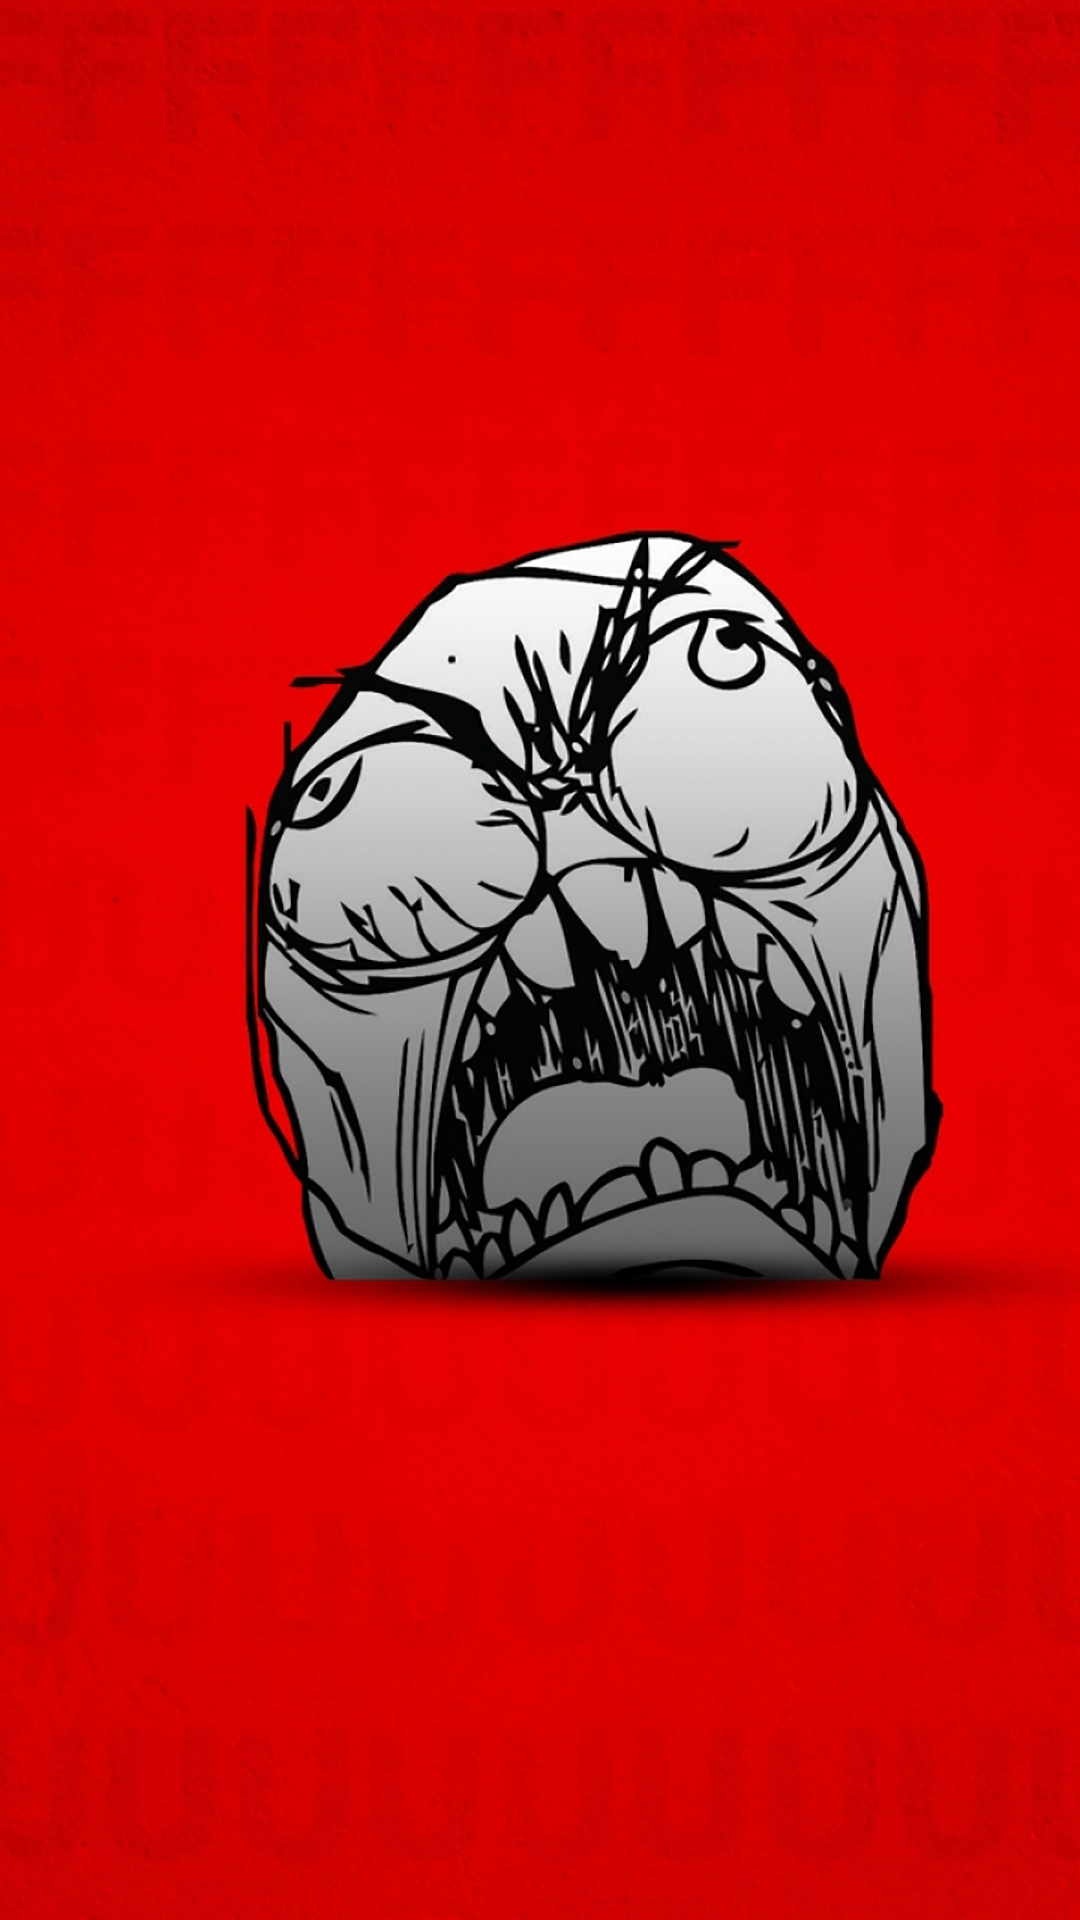 Meme Emotions Wallpapers Free Download for Mobile